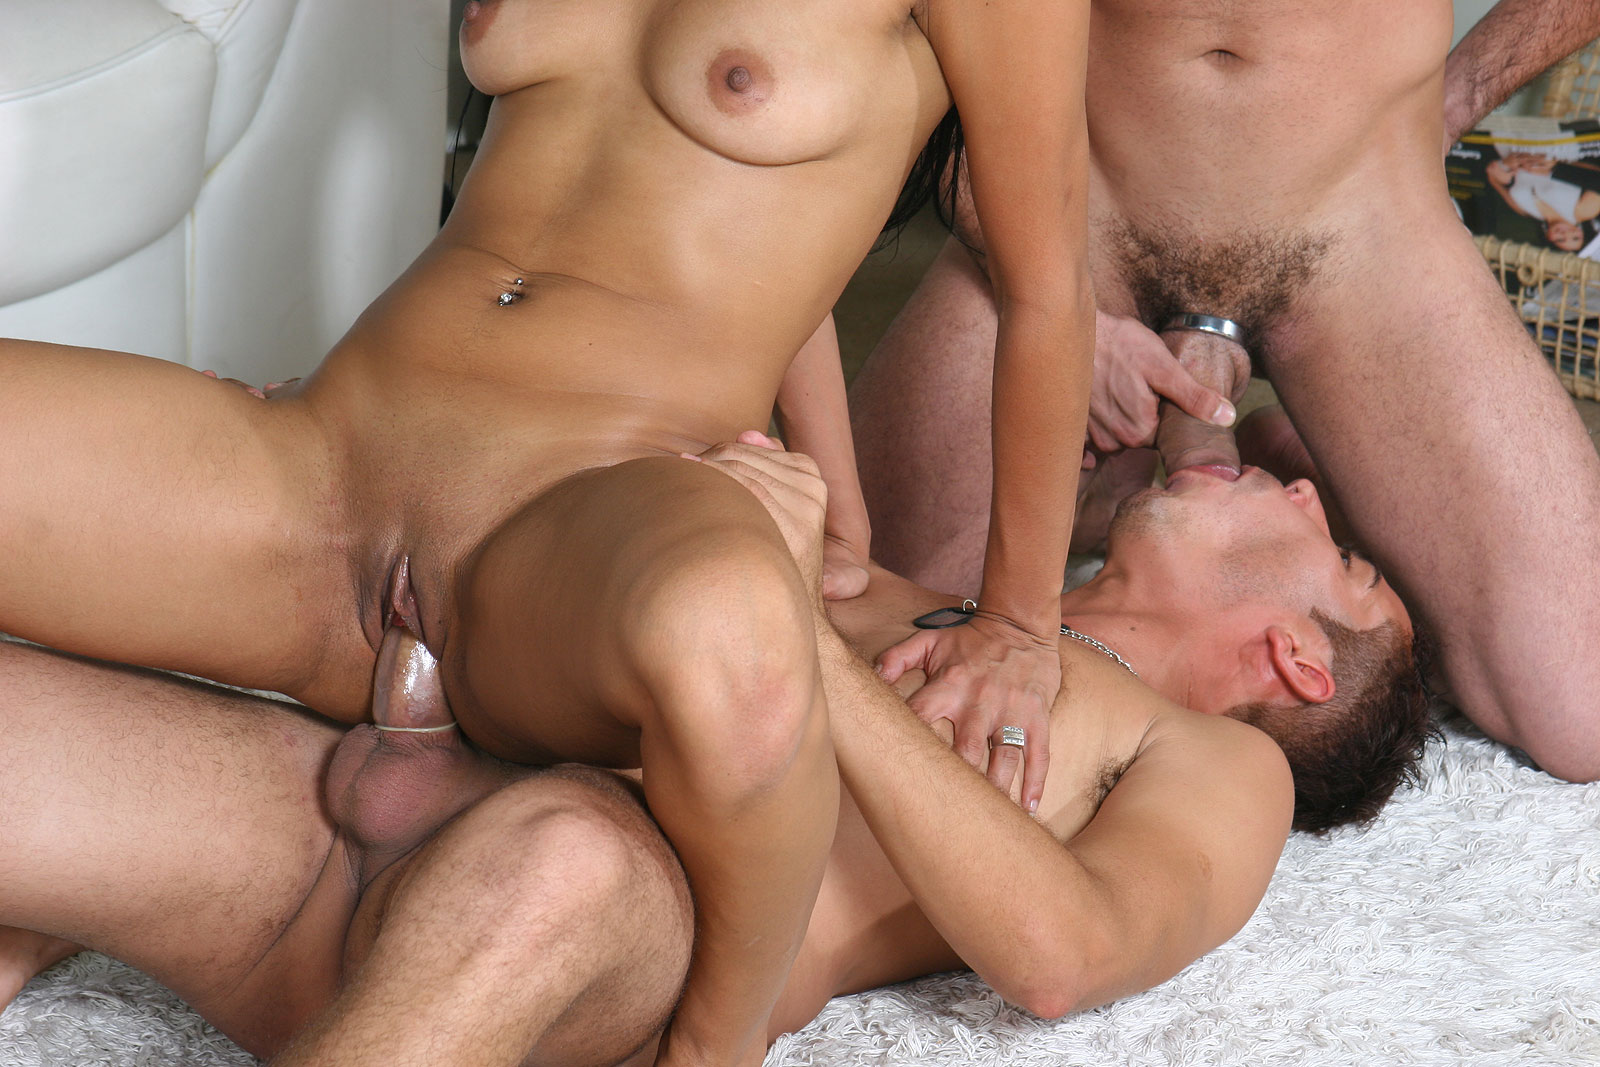 Generally active happy Sissy Orgy Girl second name